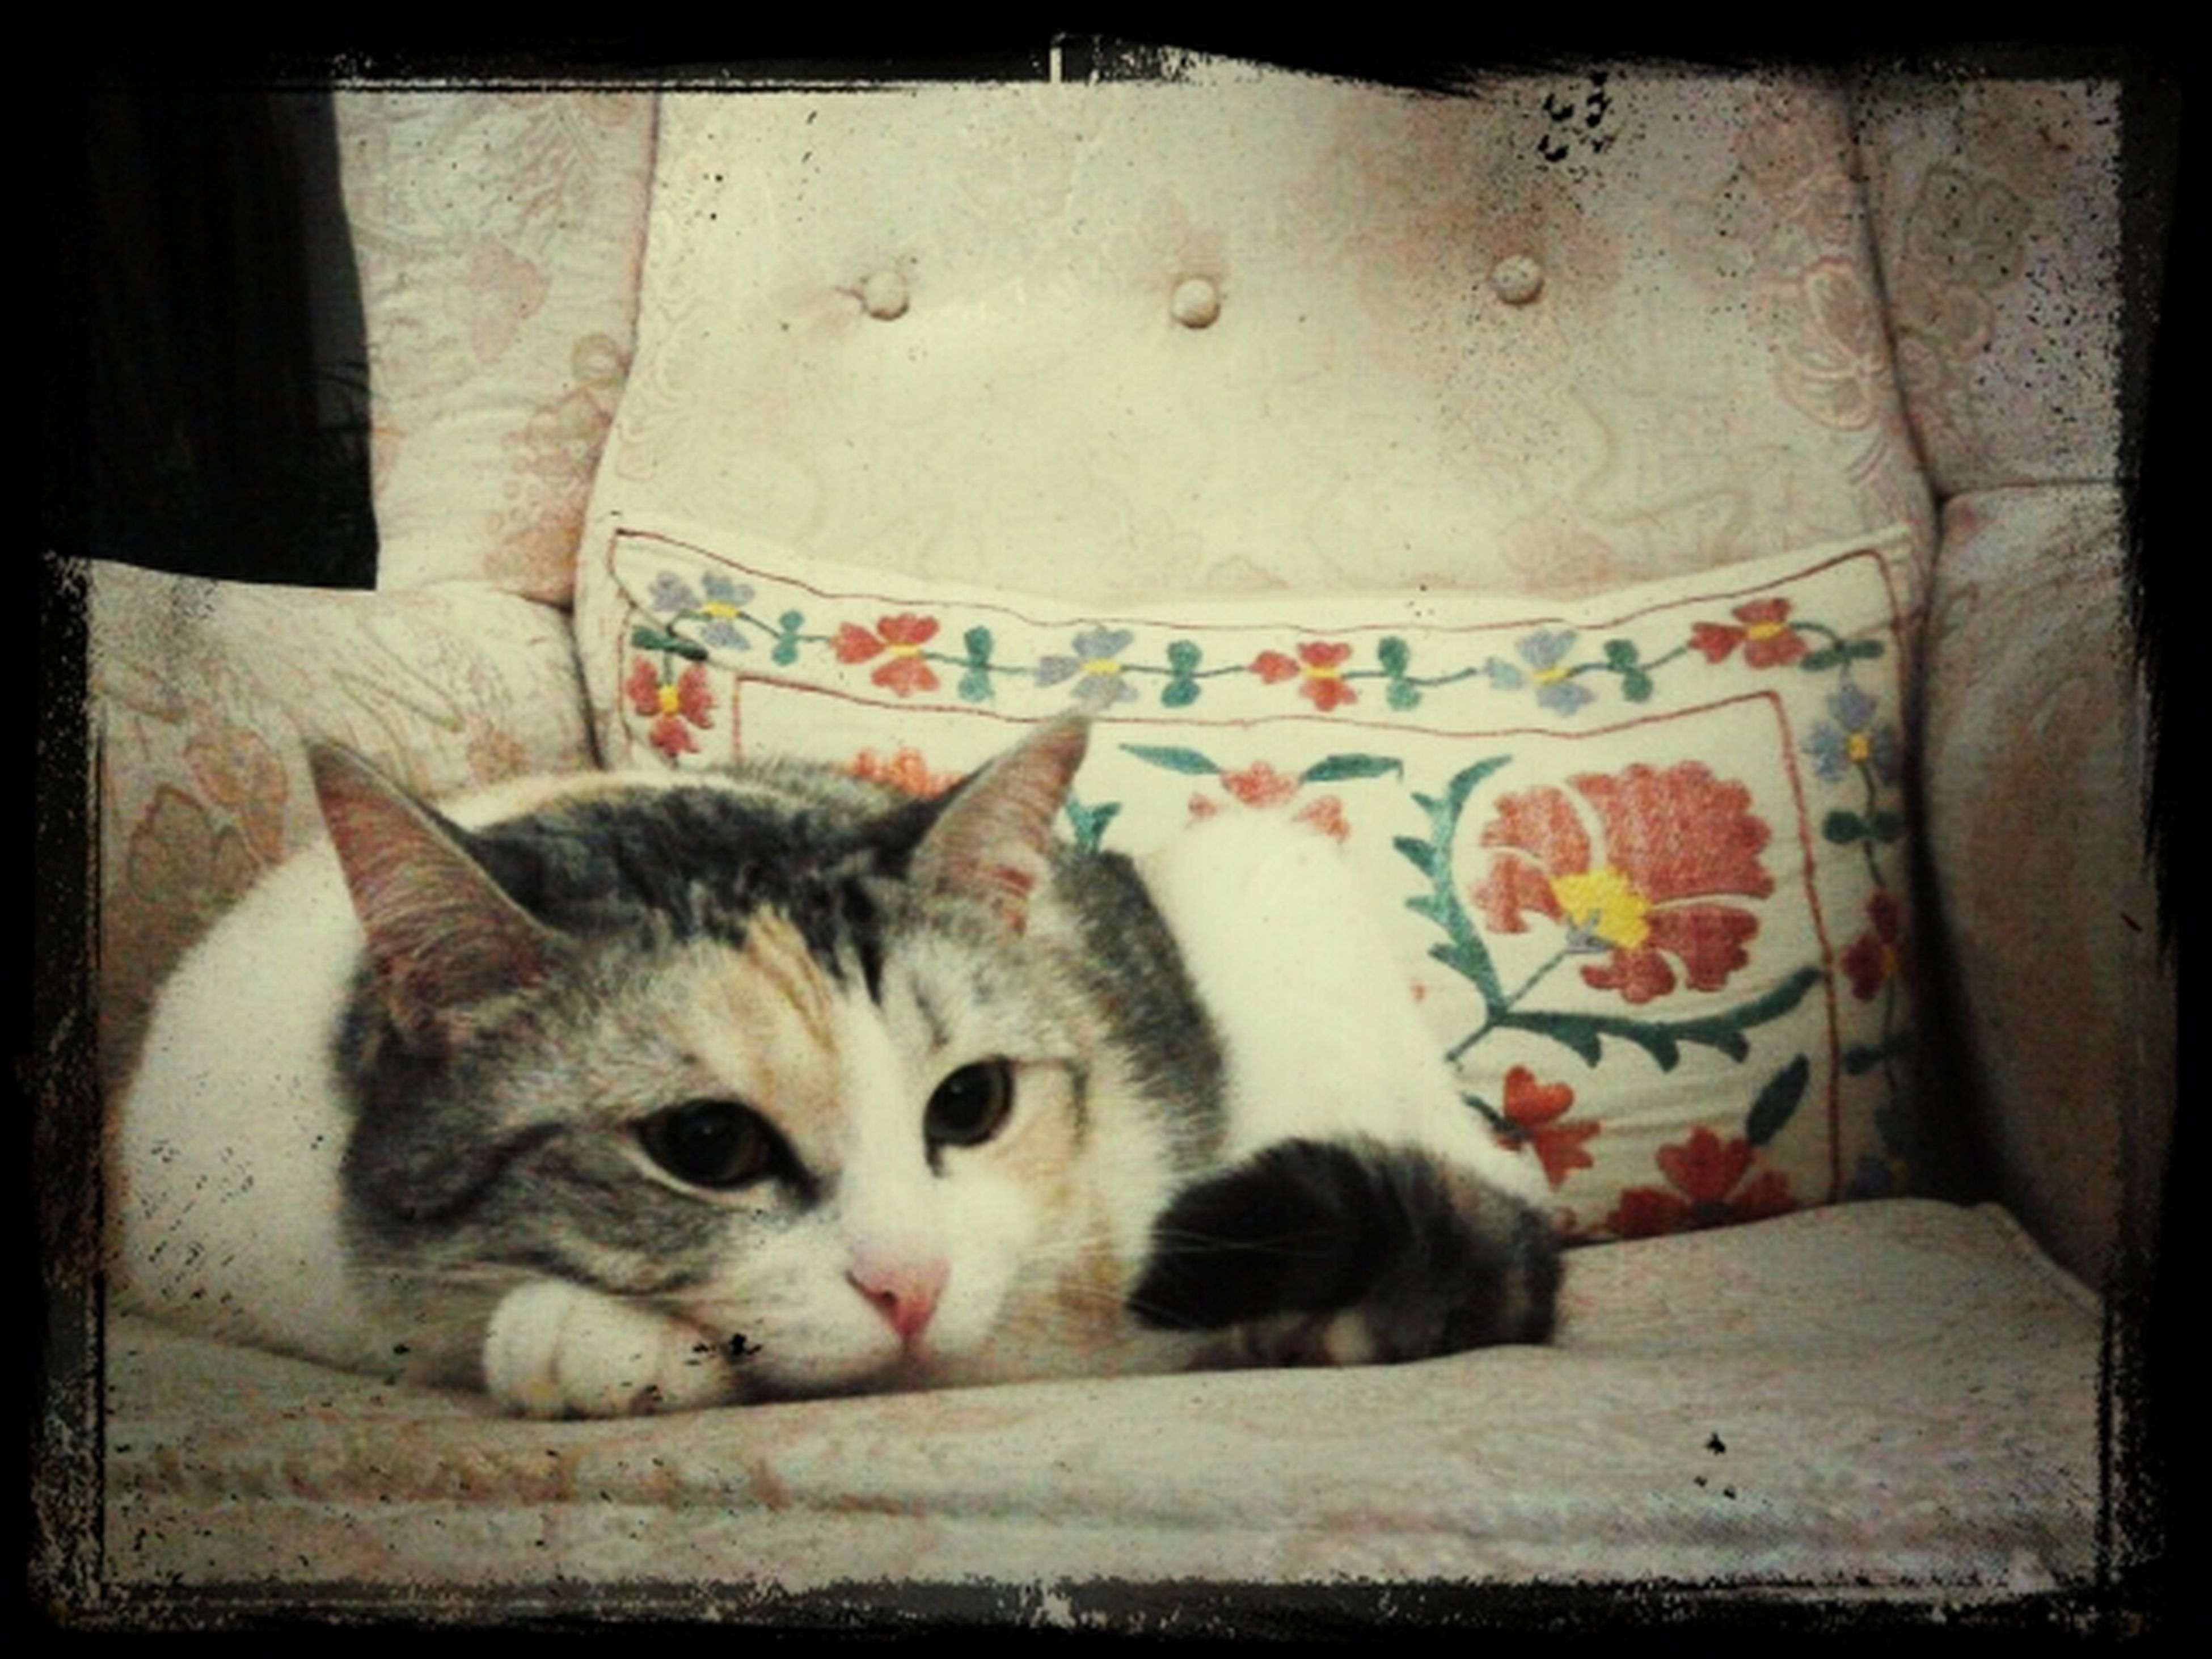 domestic cat, pets, domestic animals, cat, animal themes, indoors, one animal, mammal, feline, transfer print, portrait, looking at camera, relaxation, auto post production filter, whisker, lying down, resting, home interior, close-up, cute